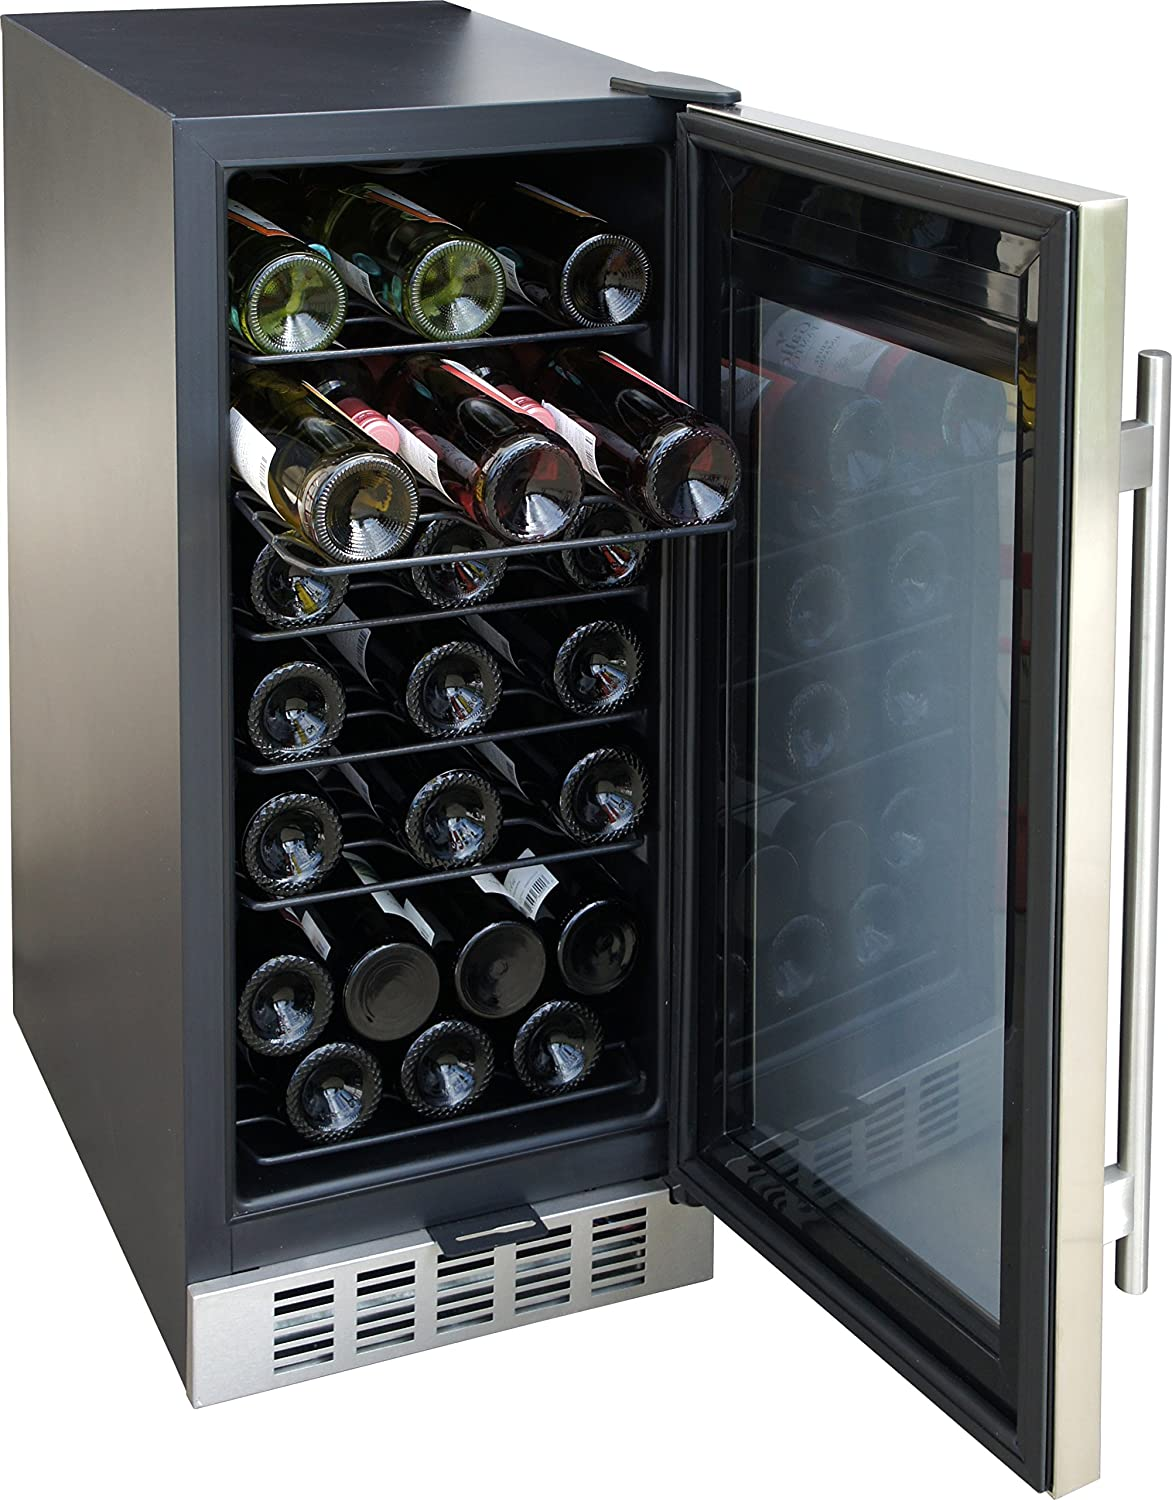 amazoncom spt wc31u 32bottle wine and beverage cooler stainless steel appliances - Under Counter Wine Cooler